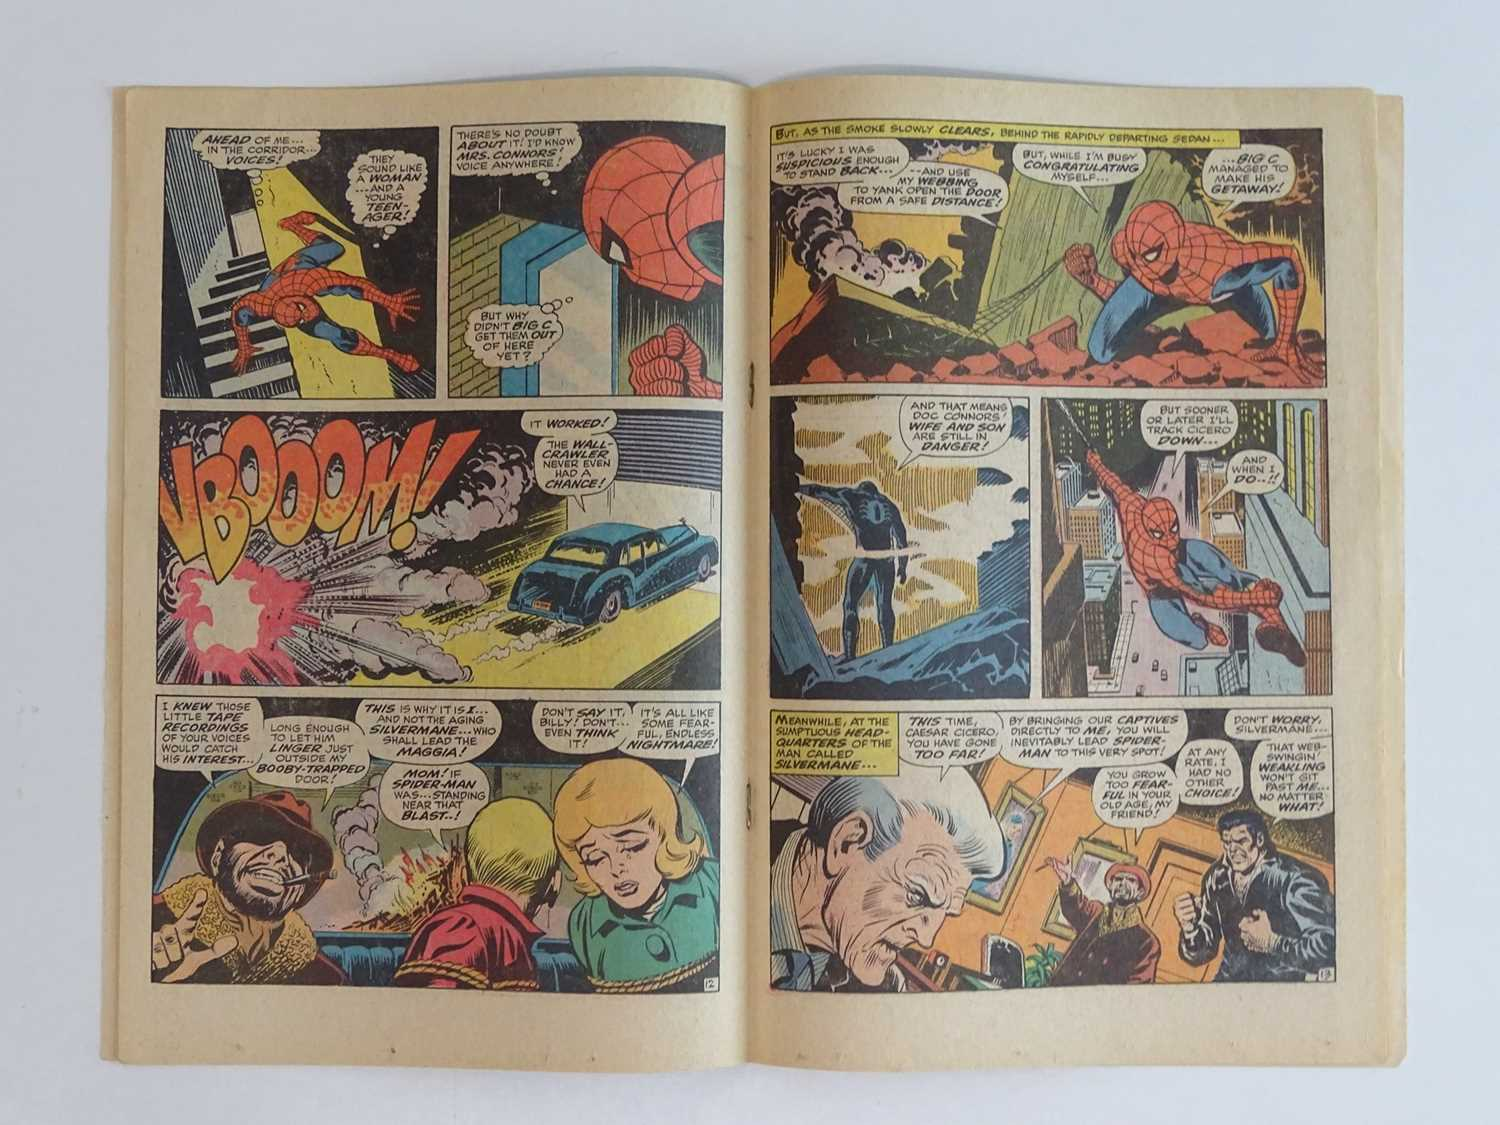 AMAZING SPIDER-MAN #74 - (1969 - MARVEL) - Spider-Man and Dr. Curt Connors (Lizard) battle - Image 5 of 9